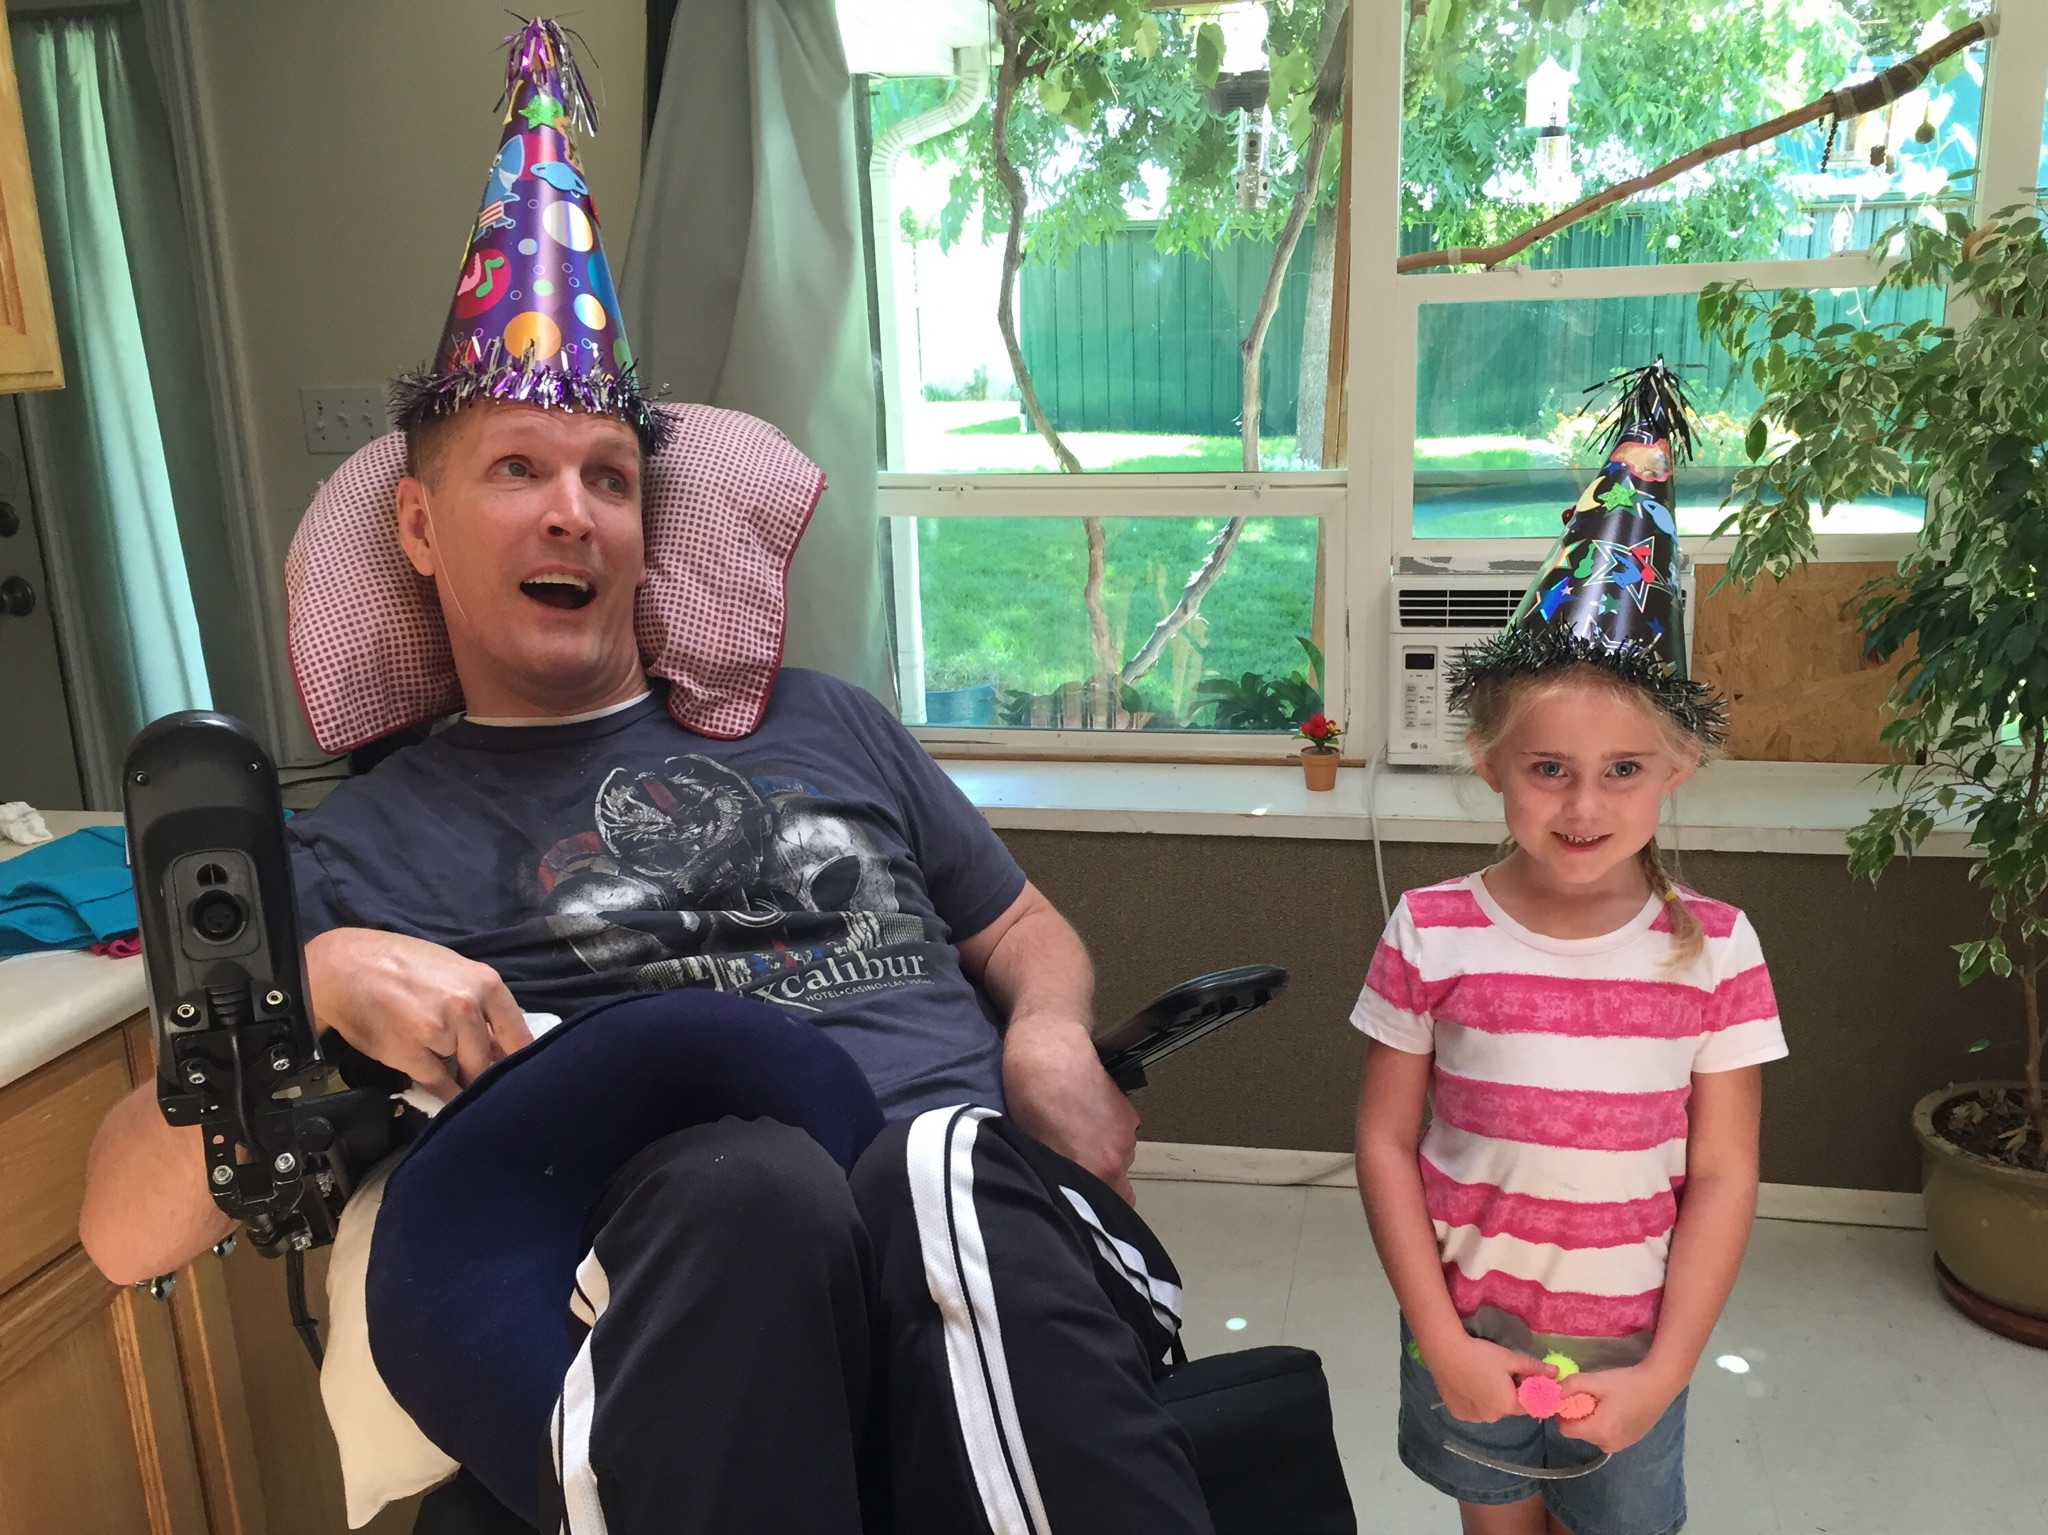 Orin Vooheis with his friend, Addie McClure, the daughter of one his aides. More than 20 years after being shot in the head on his mission, Voorheis is living a happy life surrounded by family and friends.